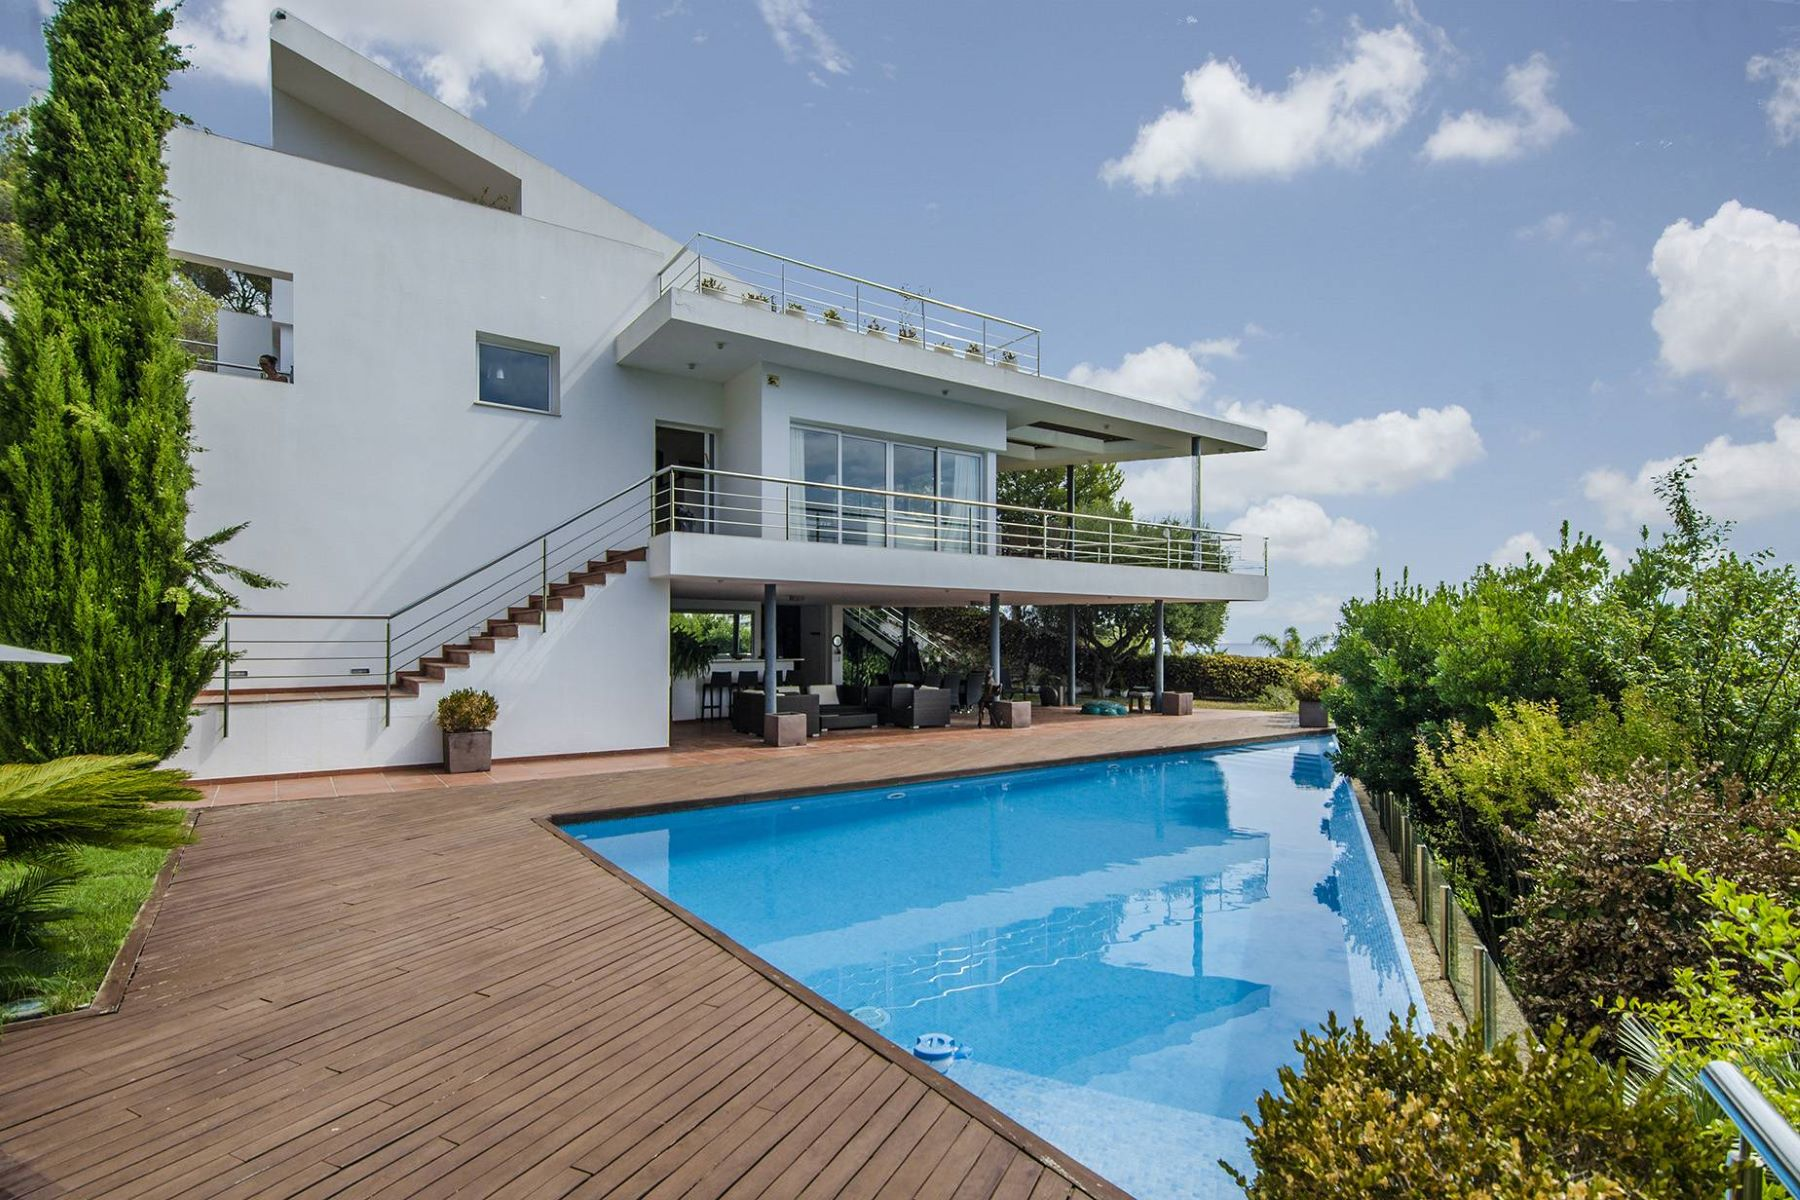 Single Family Home for Sale at Modern Style House in Can Girona Sitges, Barcelona, 08870 Spain